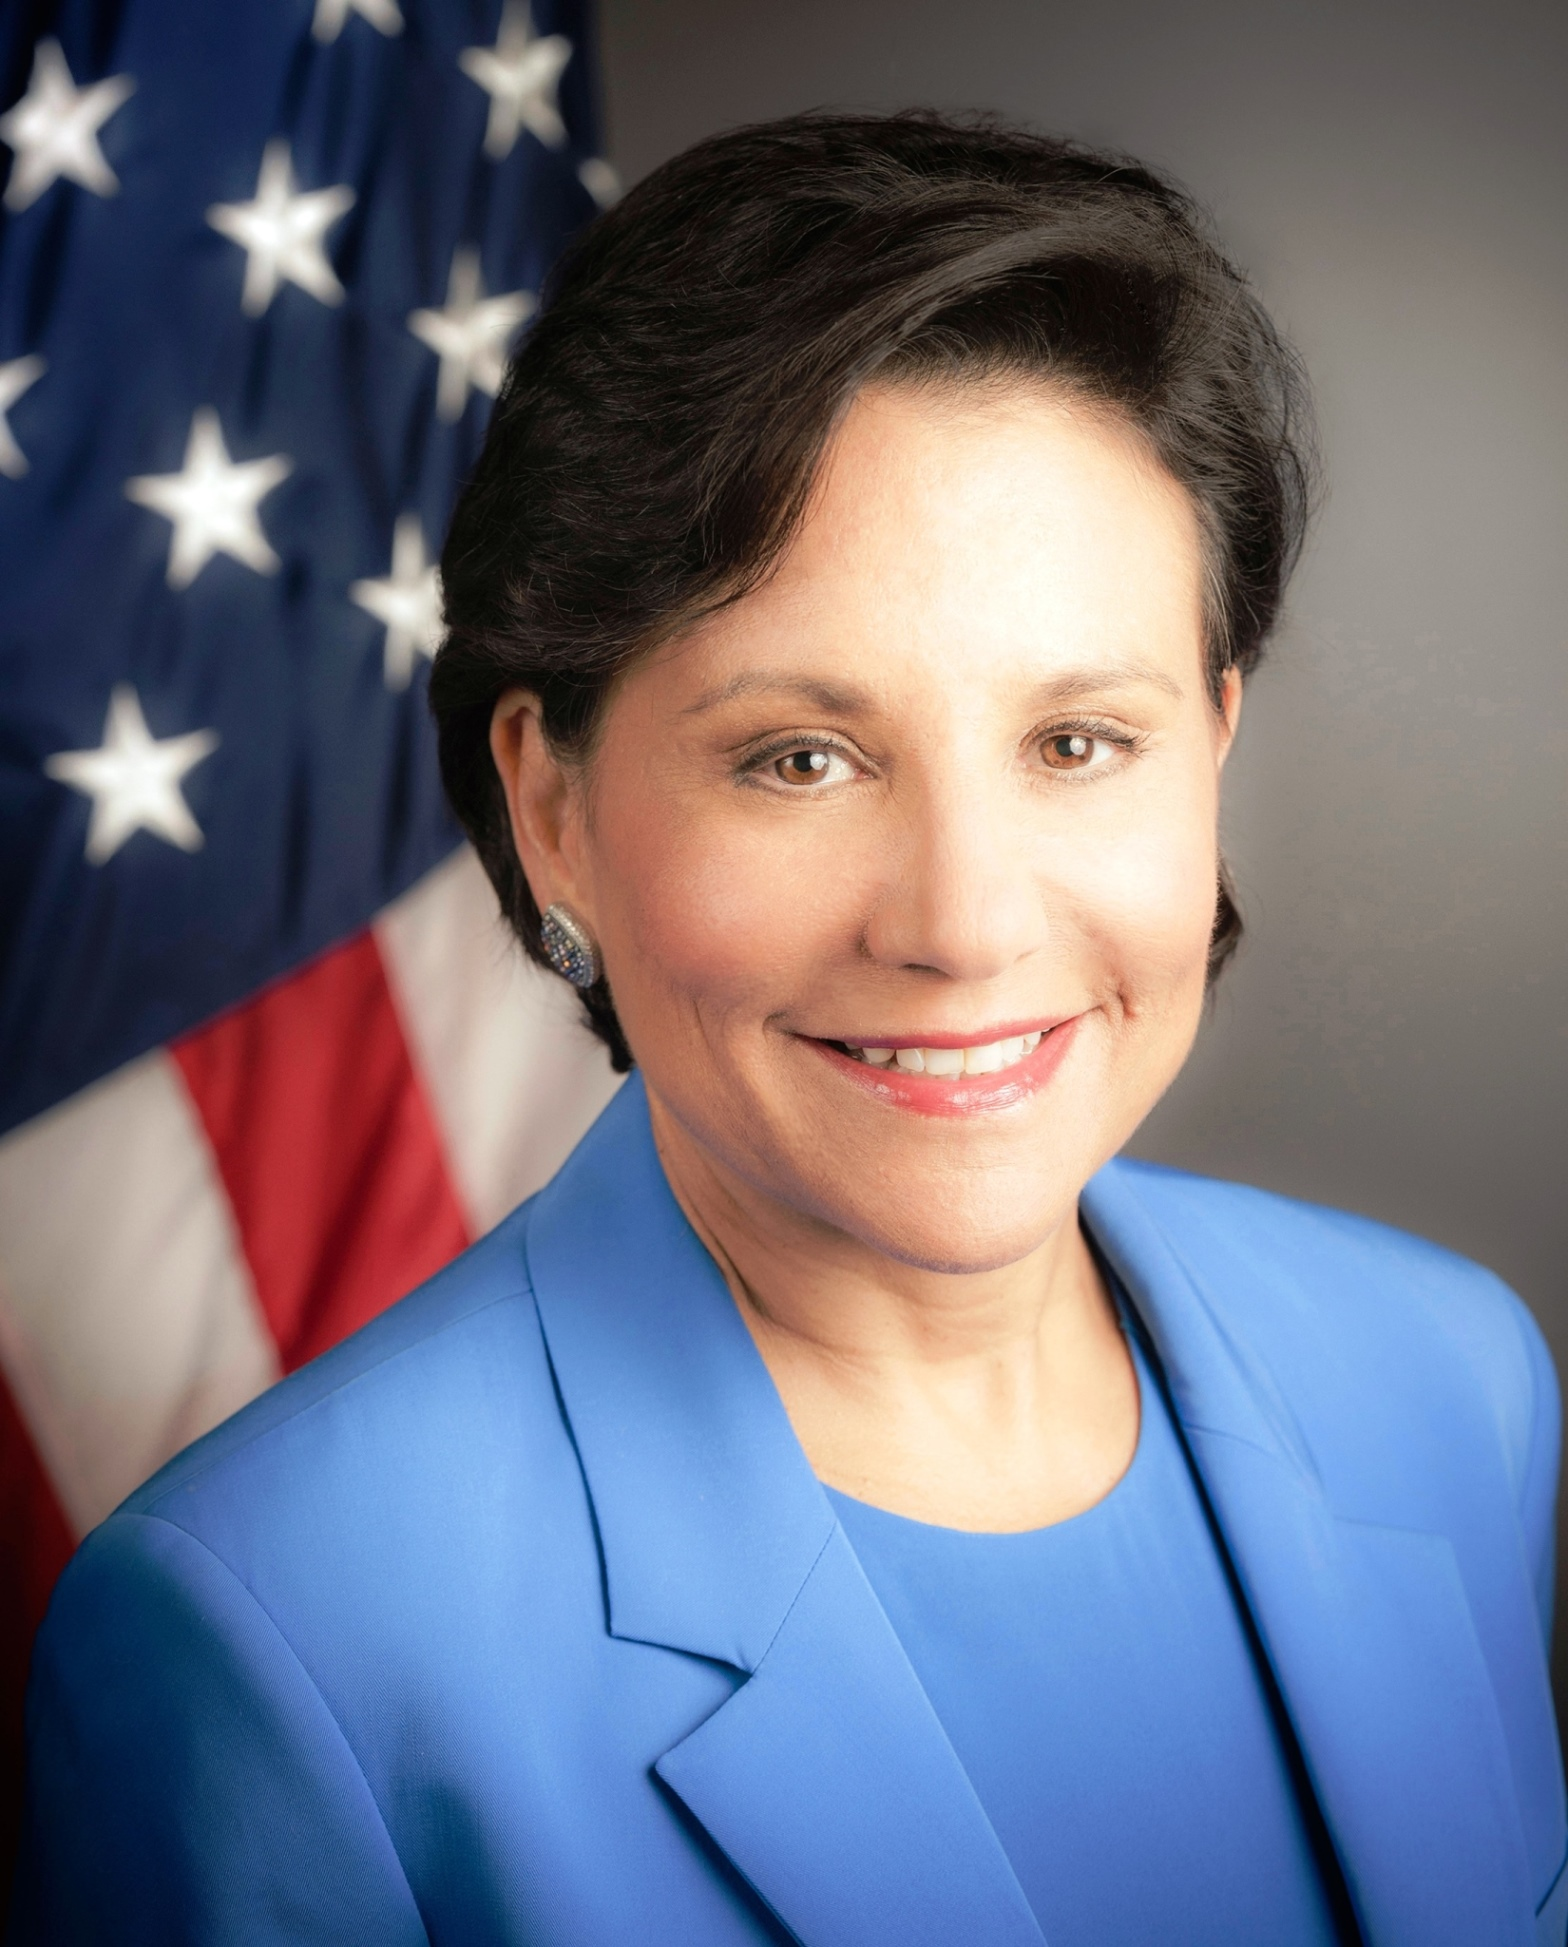 U.S. Secretary of Commerce Penny Pritzker to Lead Presidential Delegation to Ukraine